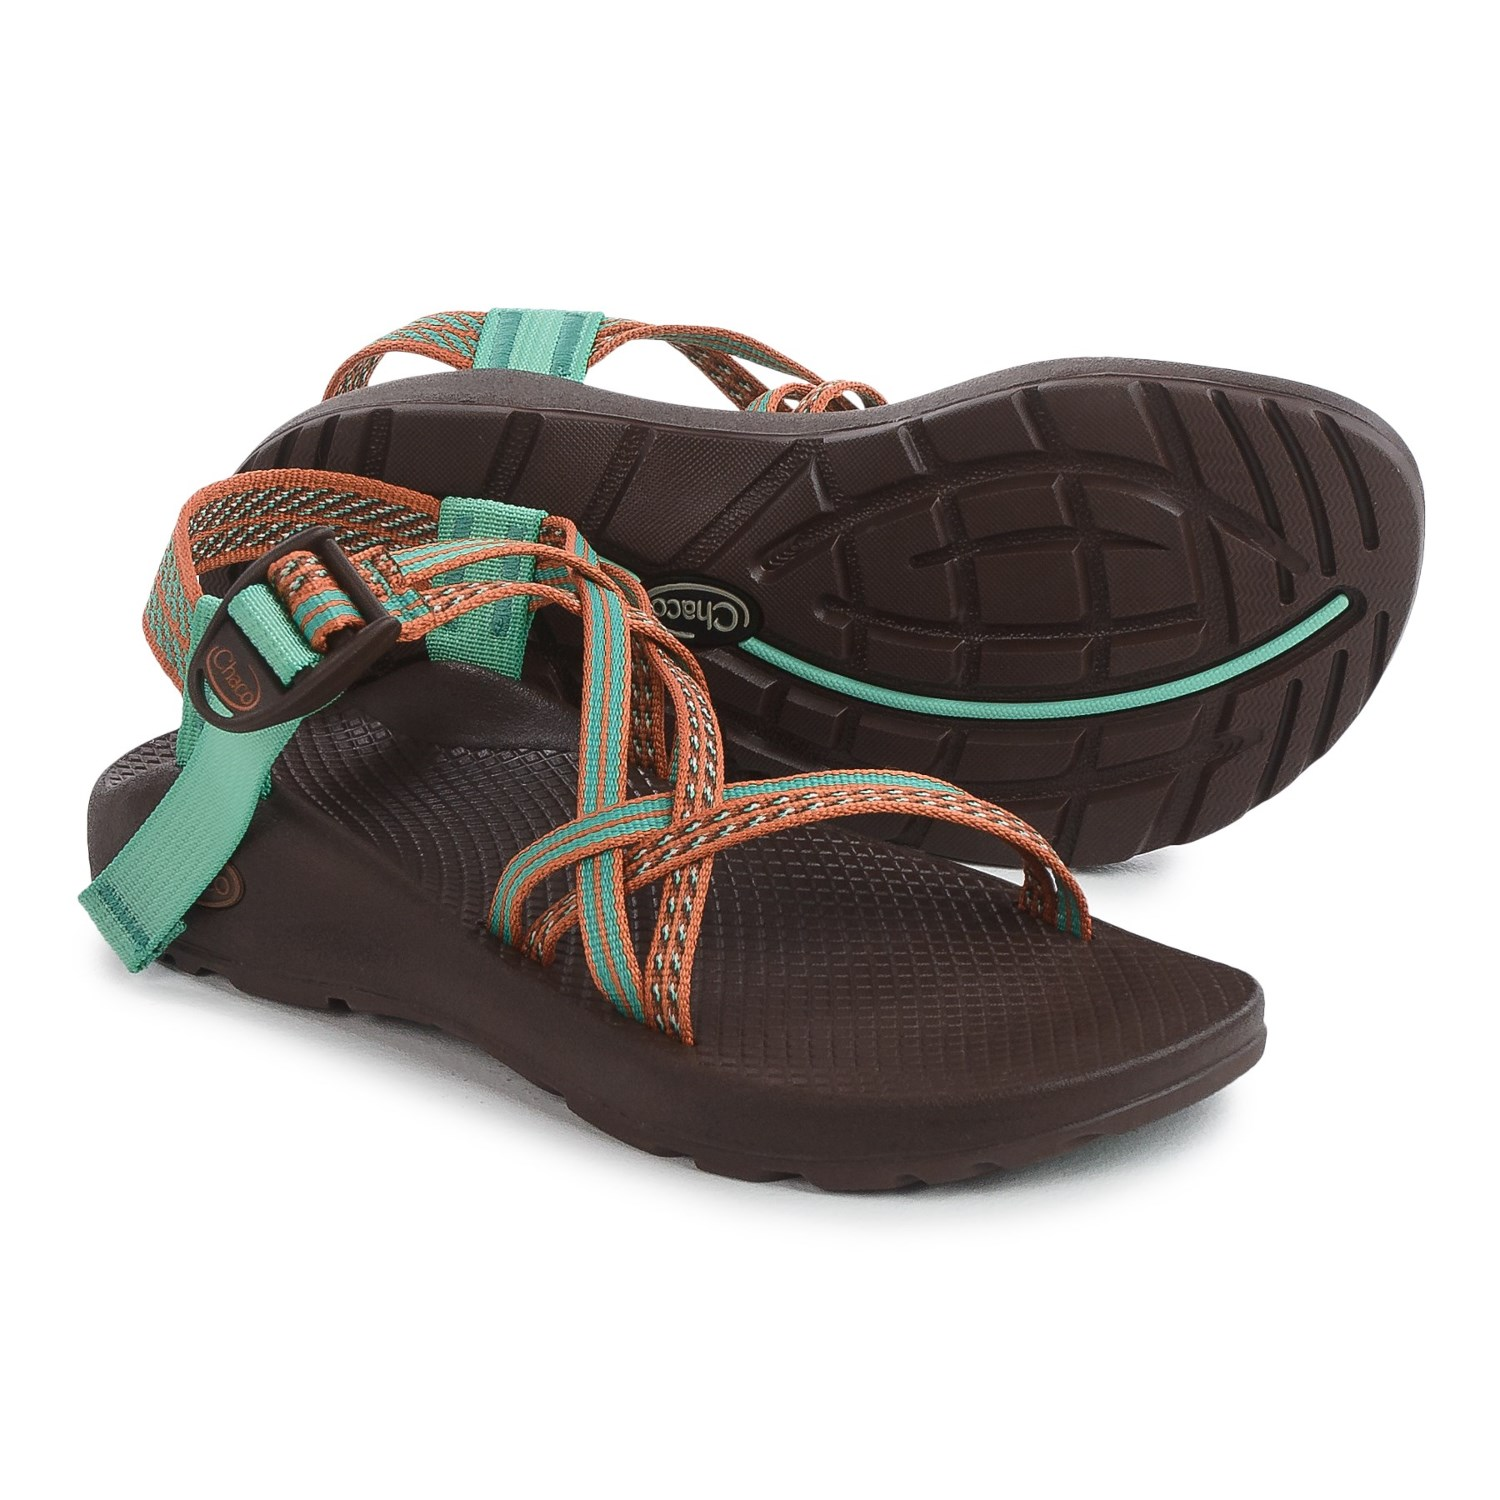 Womens sandals chaco - Chaco Zx 1 Classic Sport Sandals For Women In Adobe